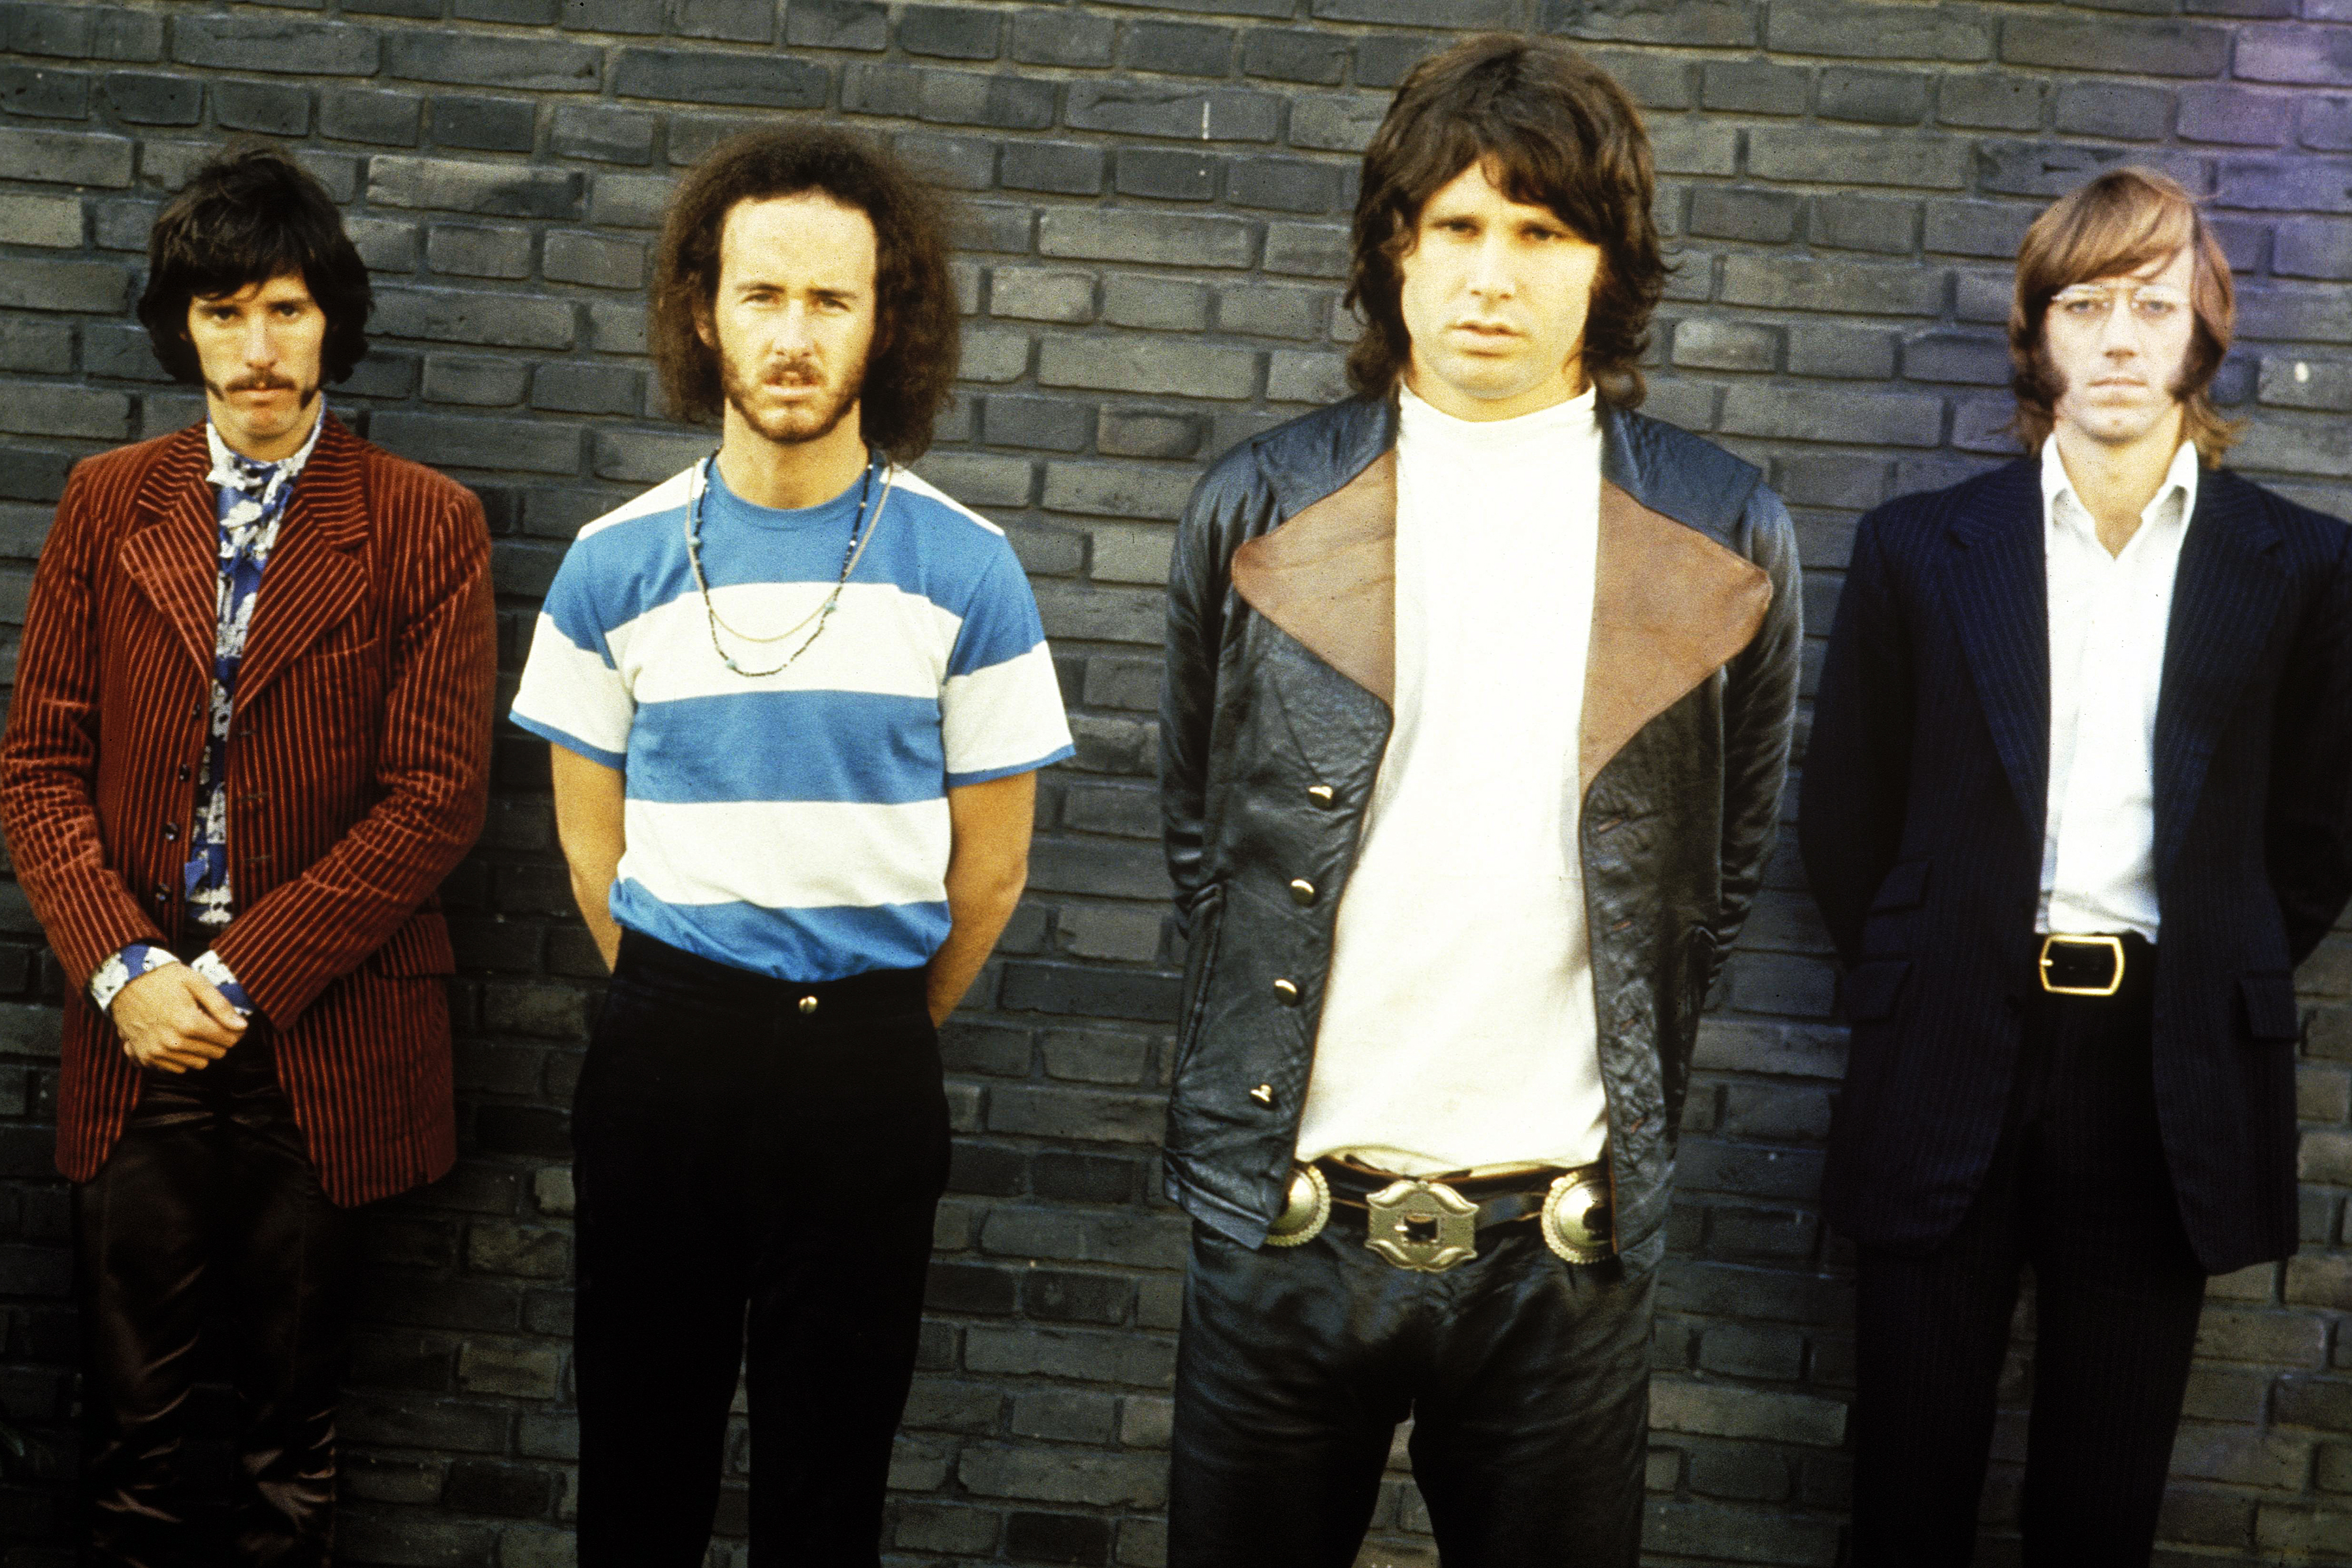 Hear The Doors Rare Hello I Love You Rough Mix